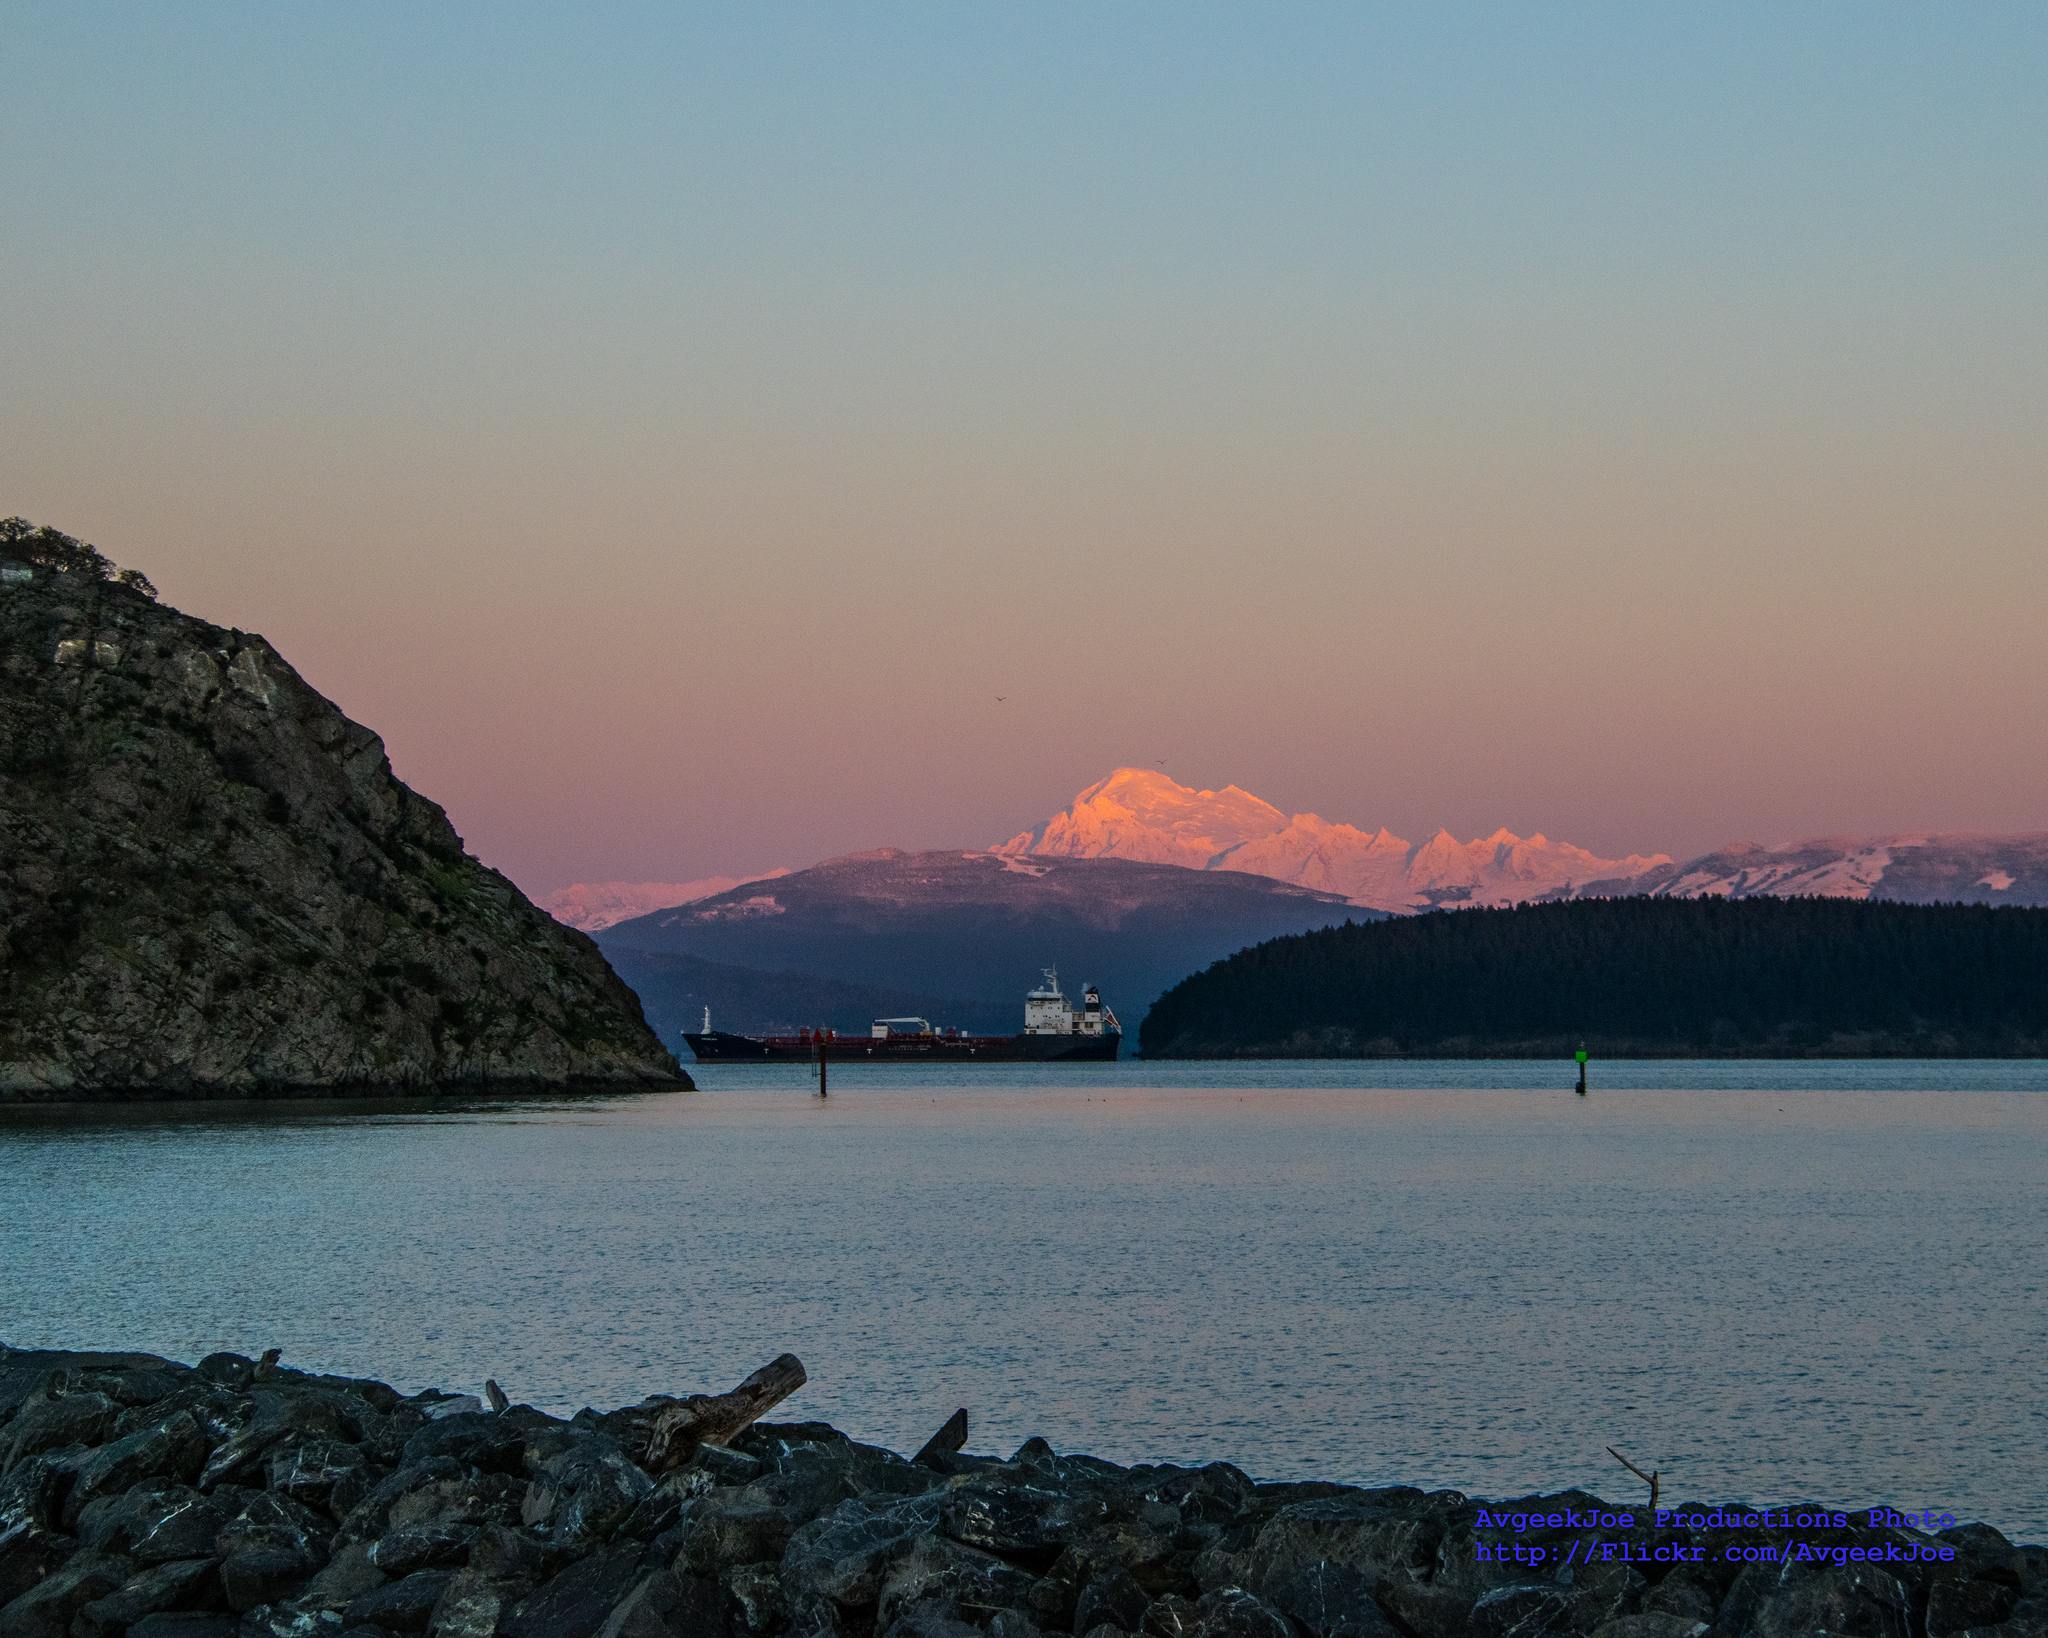 <p>Mount Baker seen from Anacortes, Washington. Photo by Joe A. Kunzler/Flickr</p>